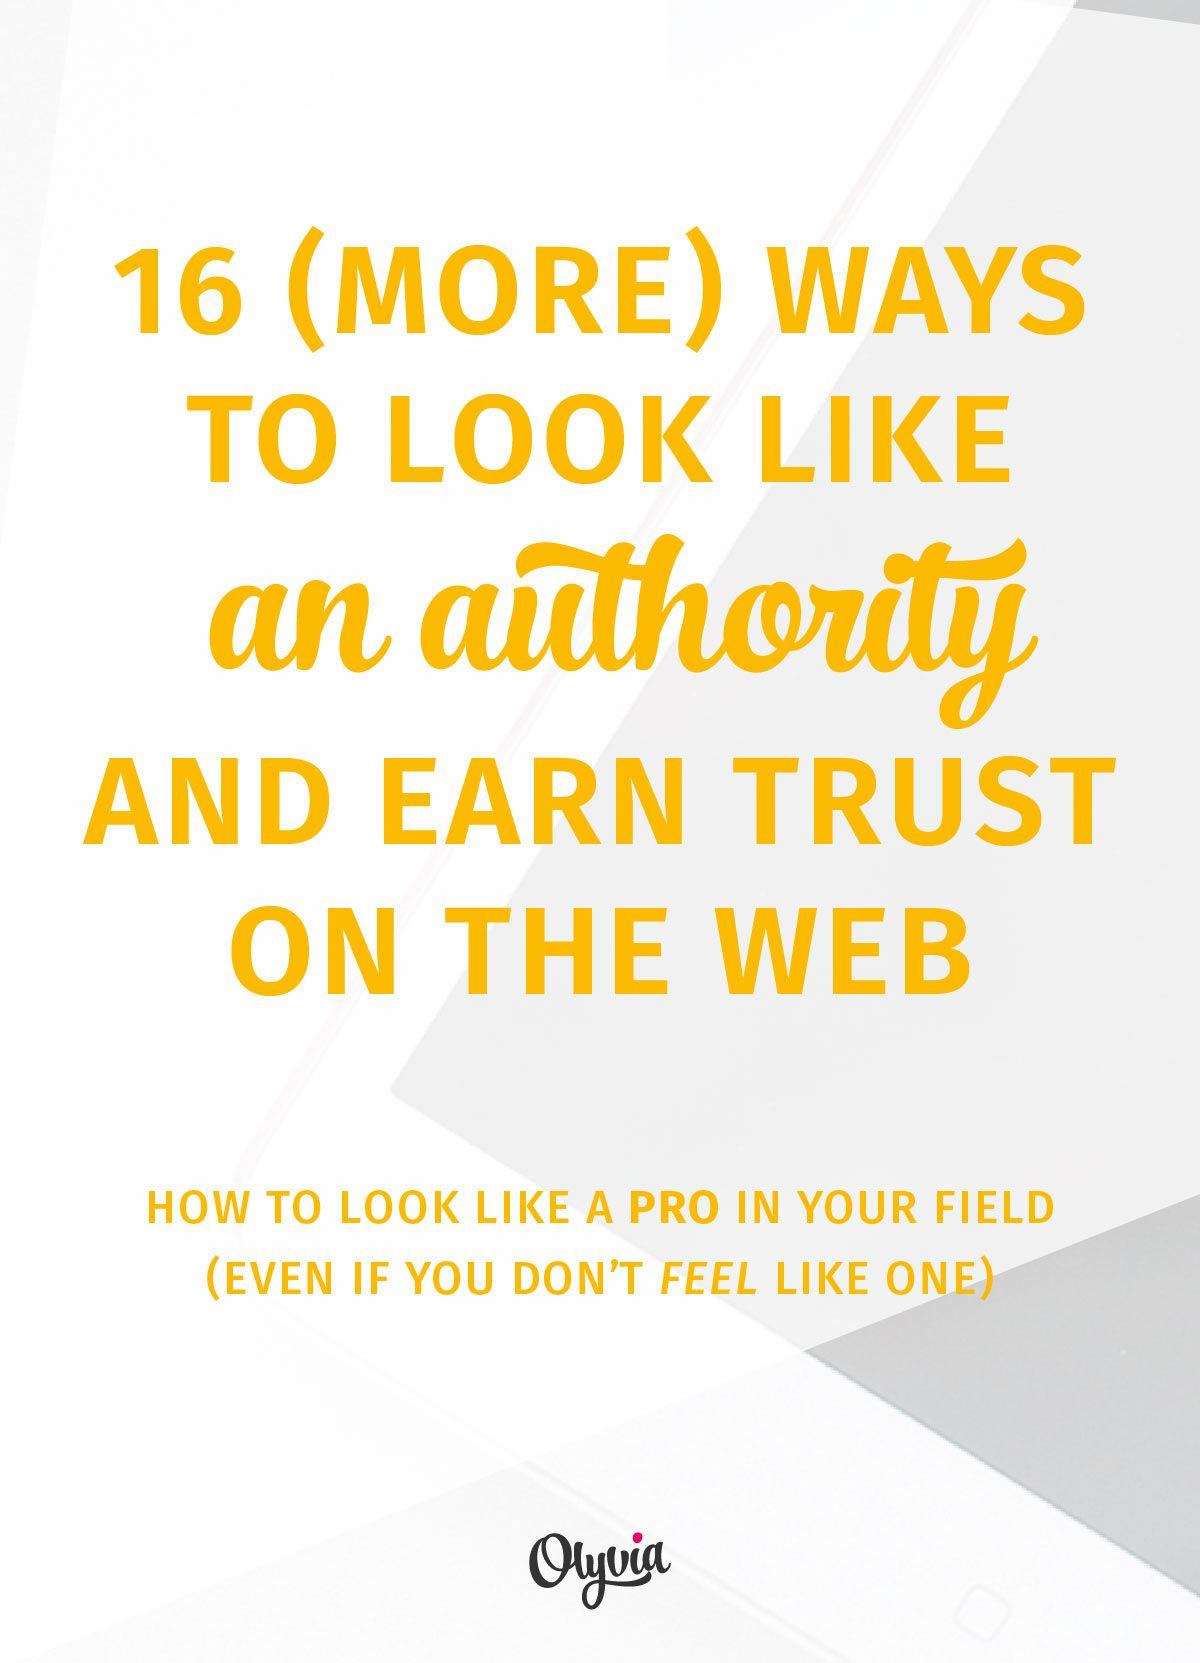 16 Ways To Look Like An Authority And Build Trust On The